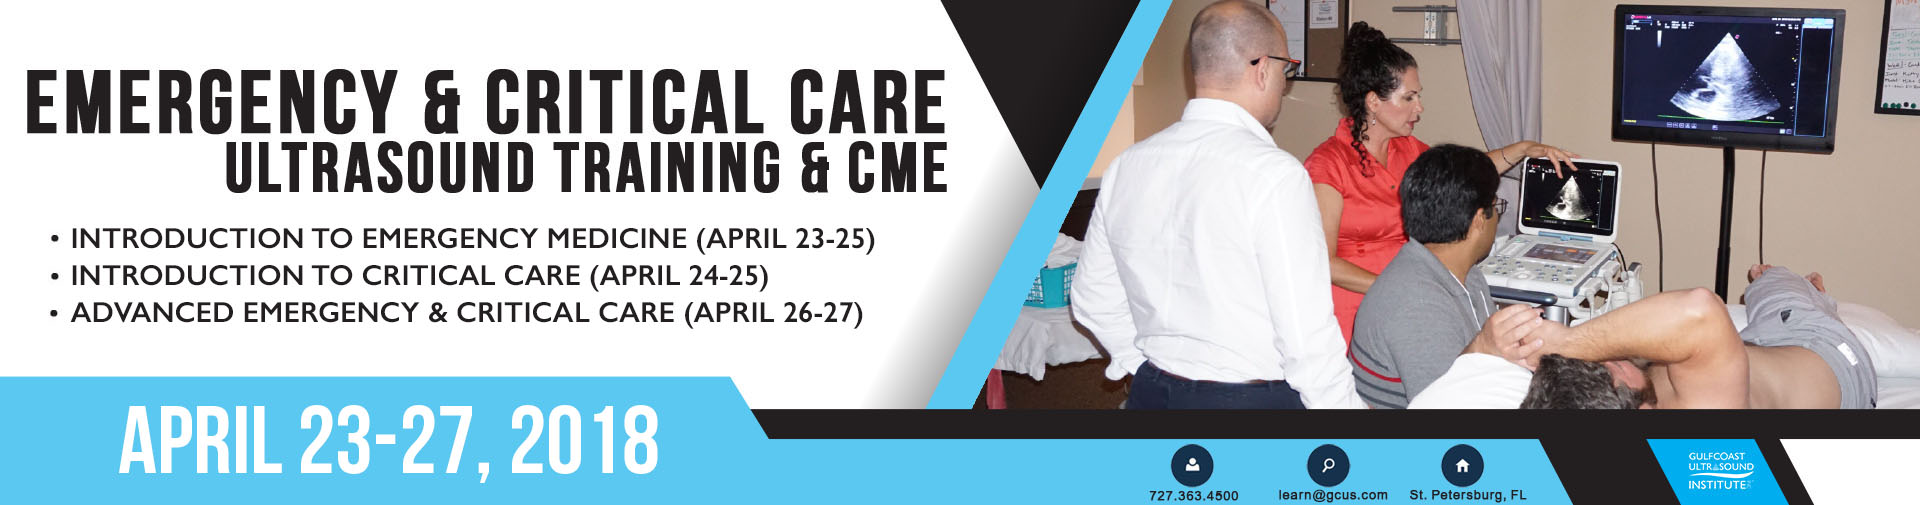 case studies in pediatric emergency and critical care ultrasound Pediatric point-of-care ultrasound course 2015 established in the emergency and critical care and limitations of the use of ultrasound in pediatric emergency.